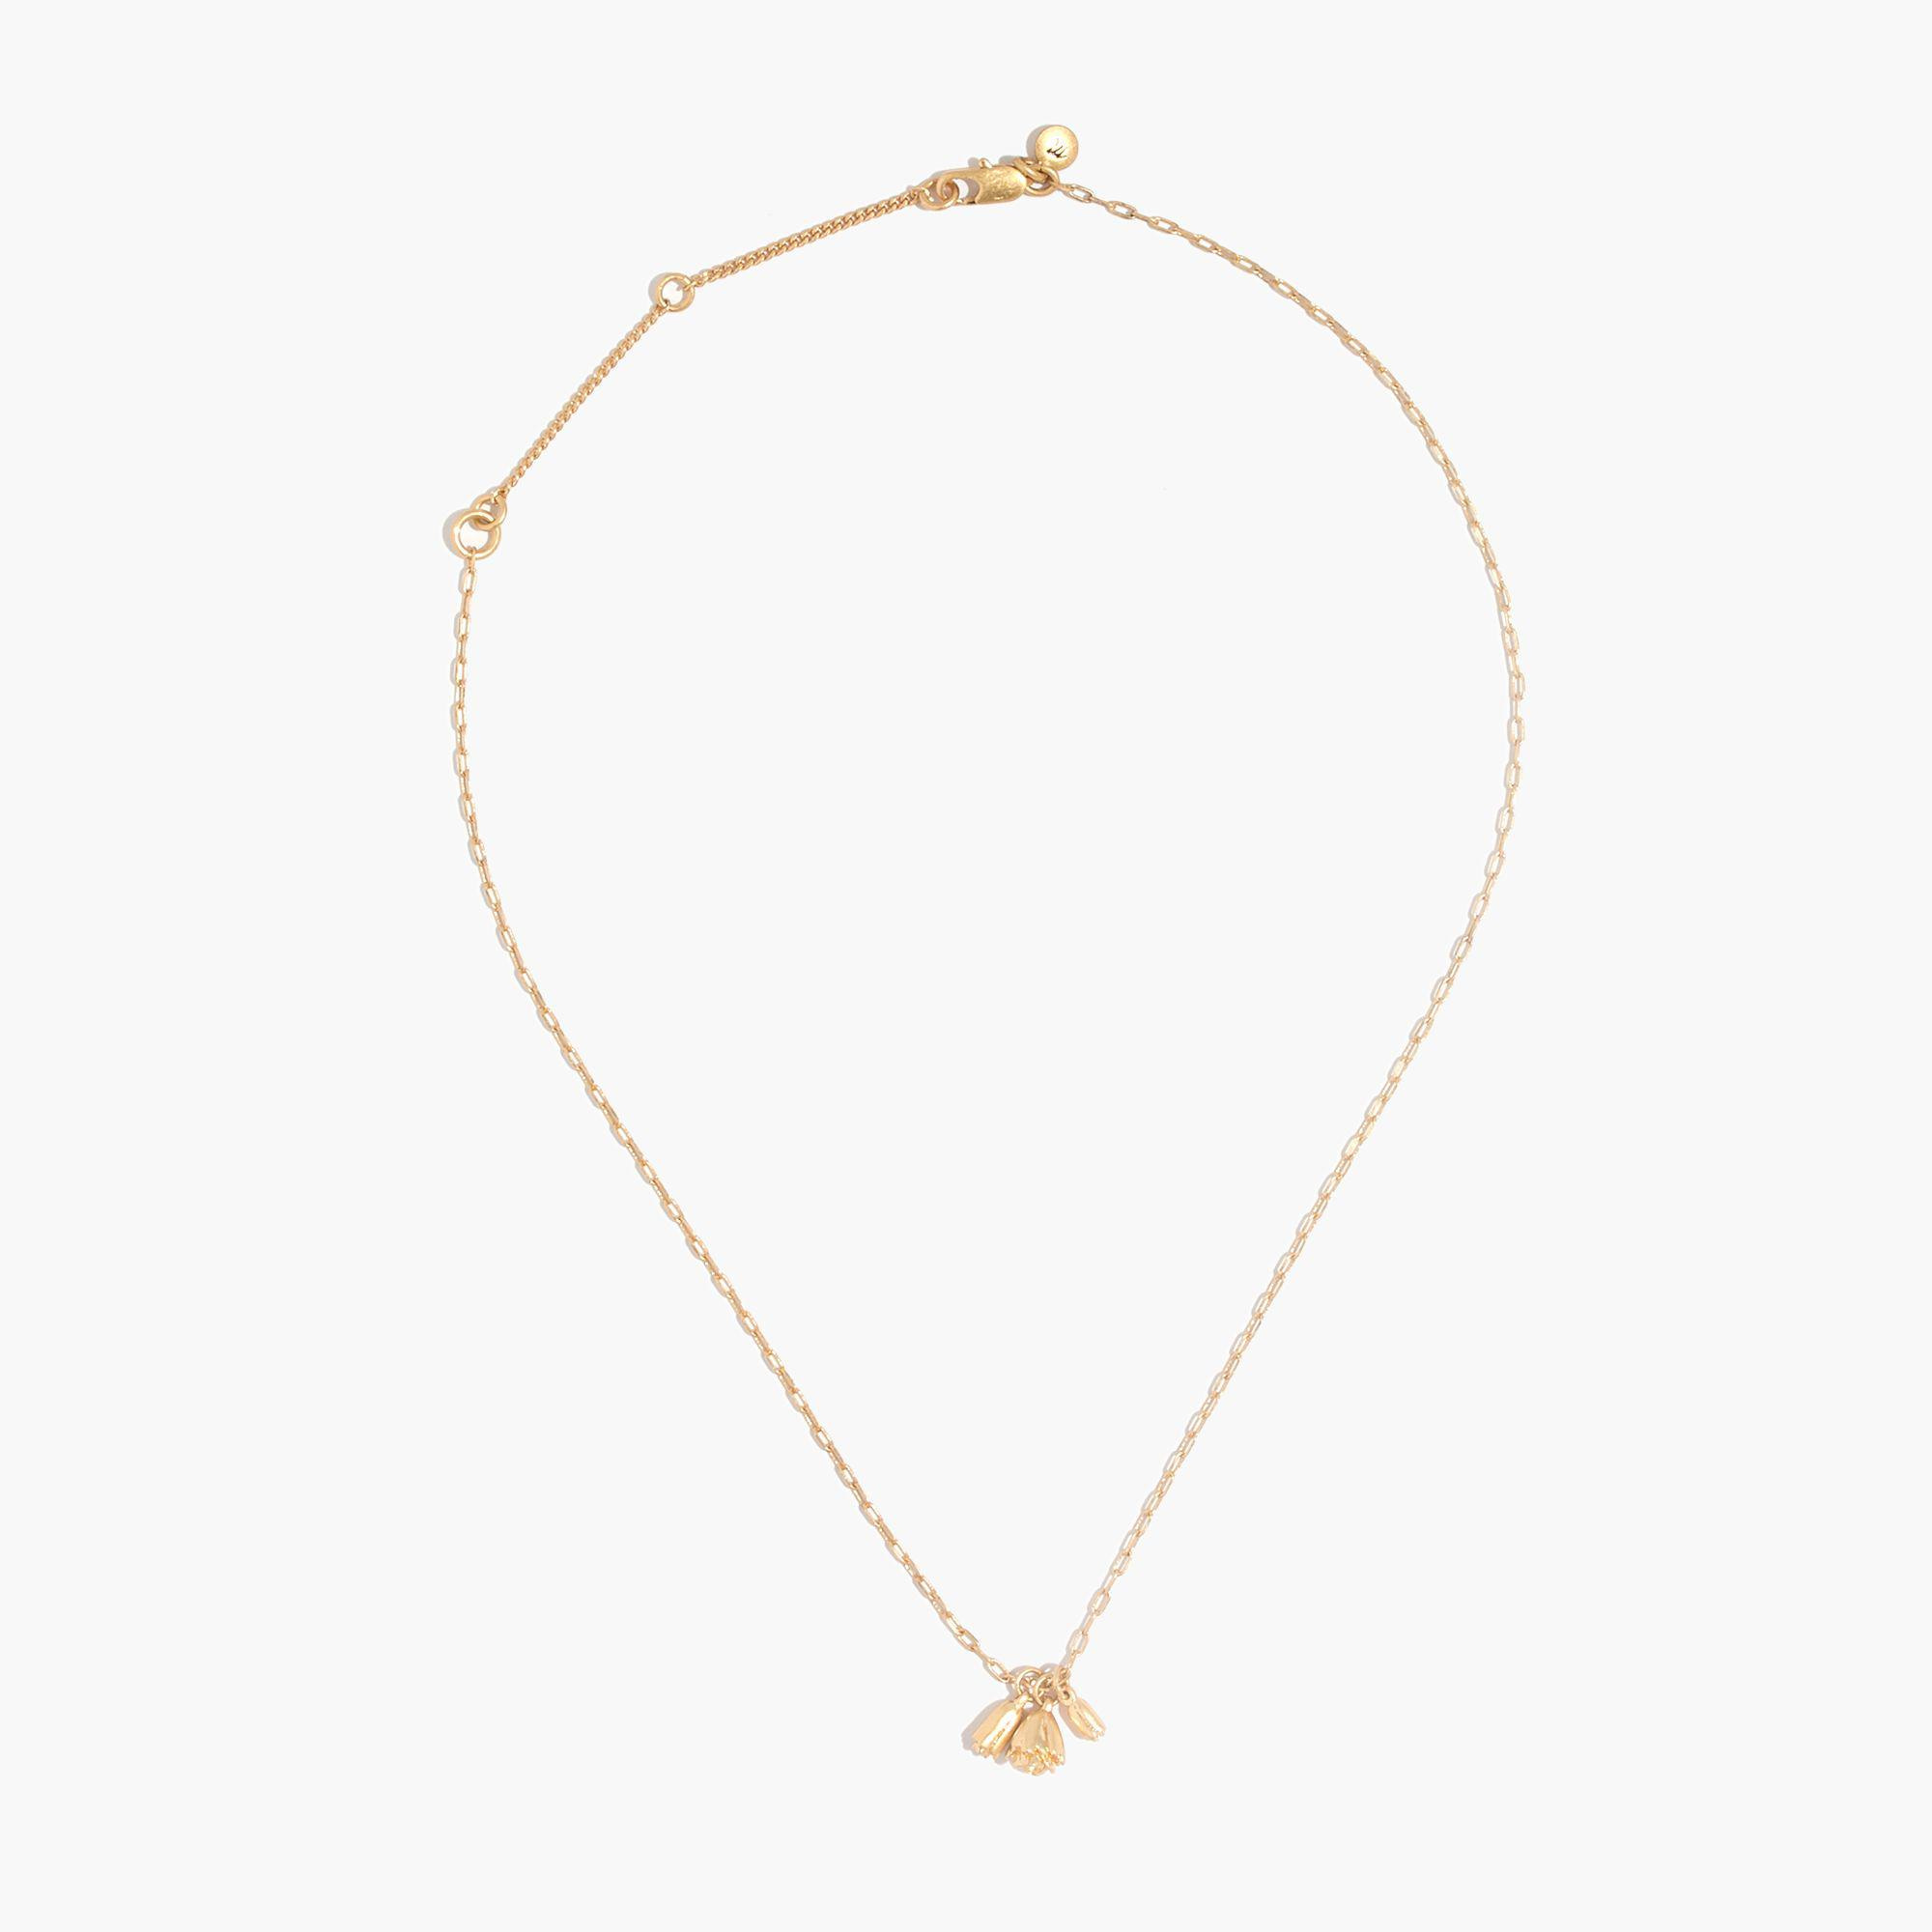 Madewell Flower Bud Necklace in Vintage Gold (Metallic)